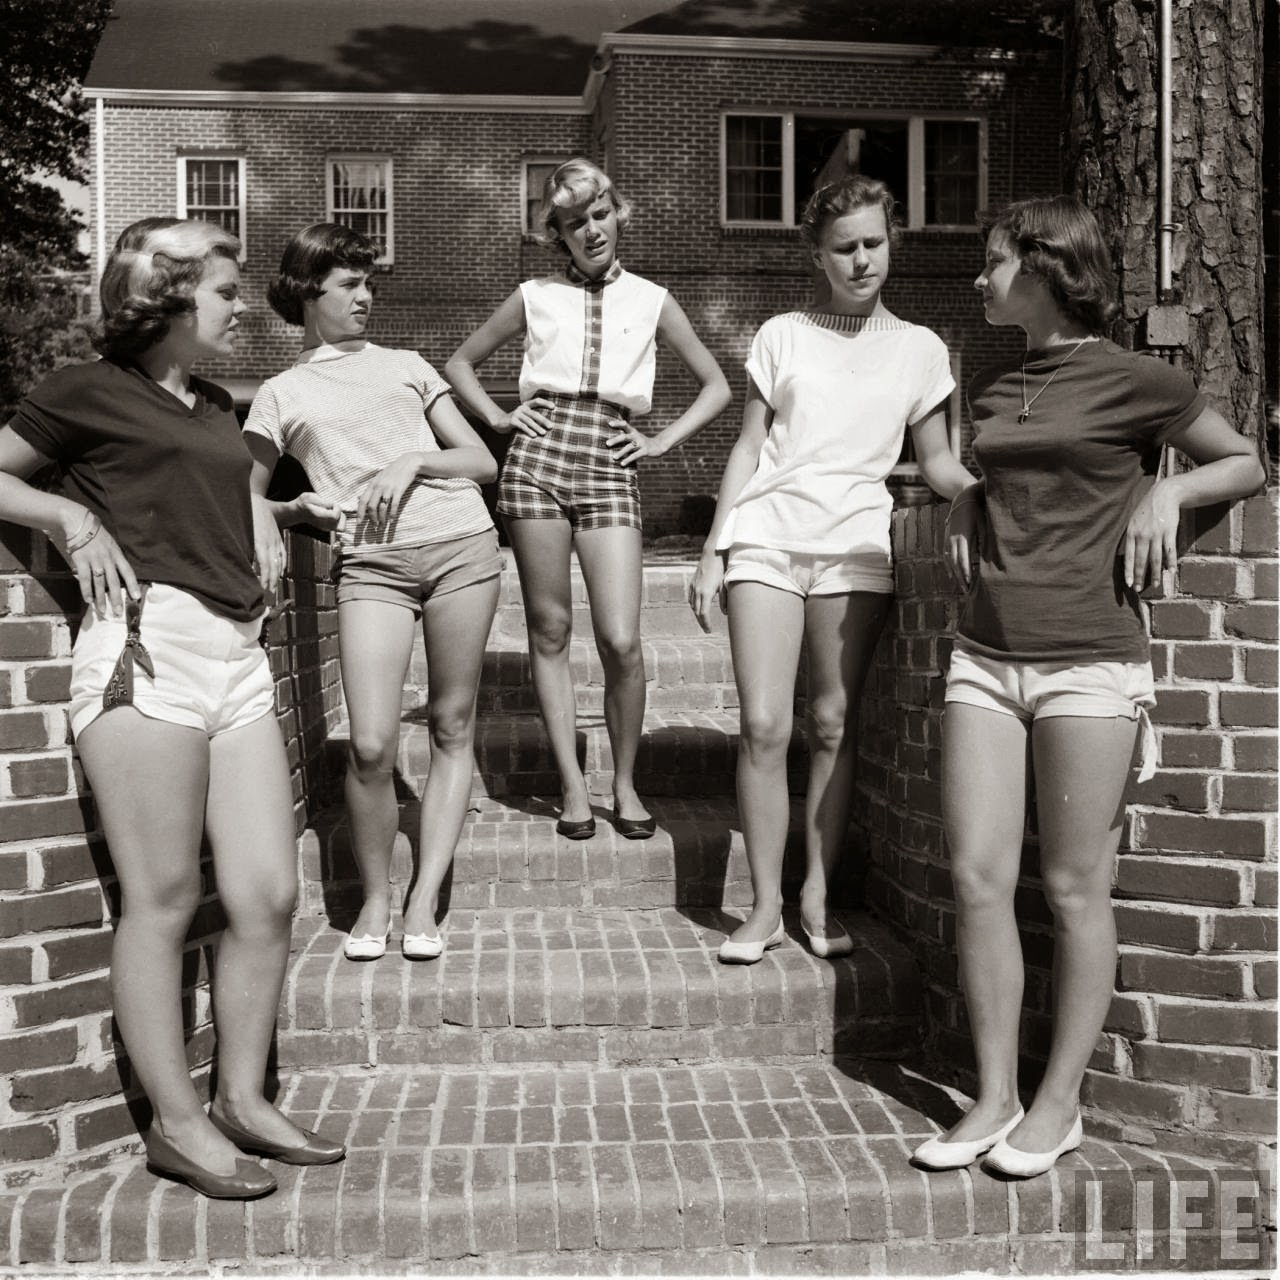 Short Shorts in the 1950's (22)